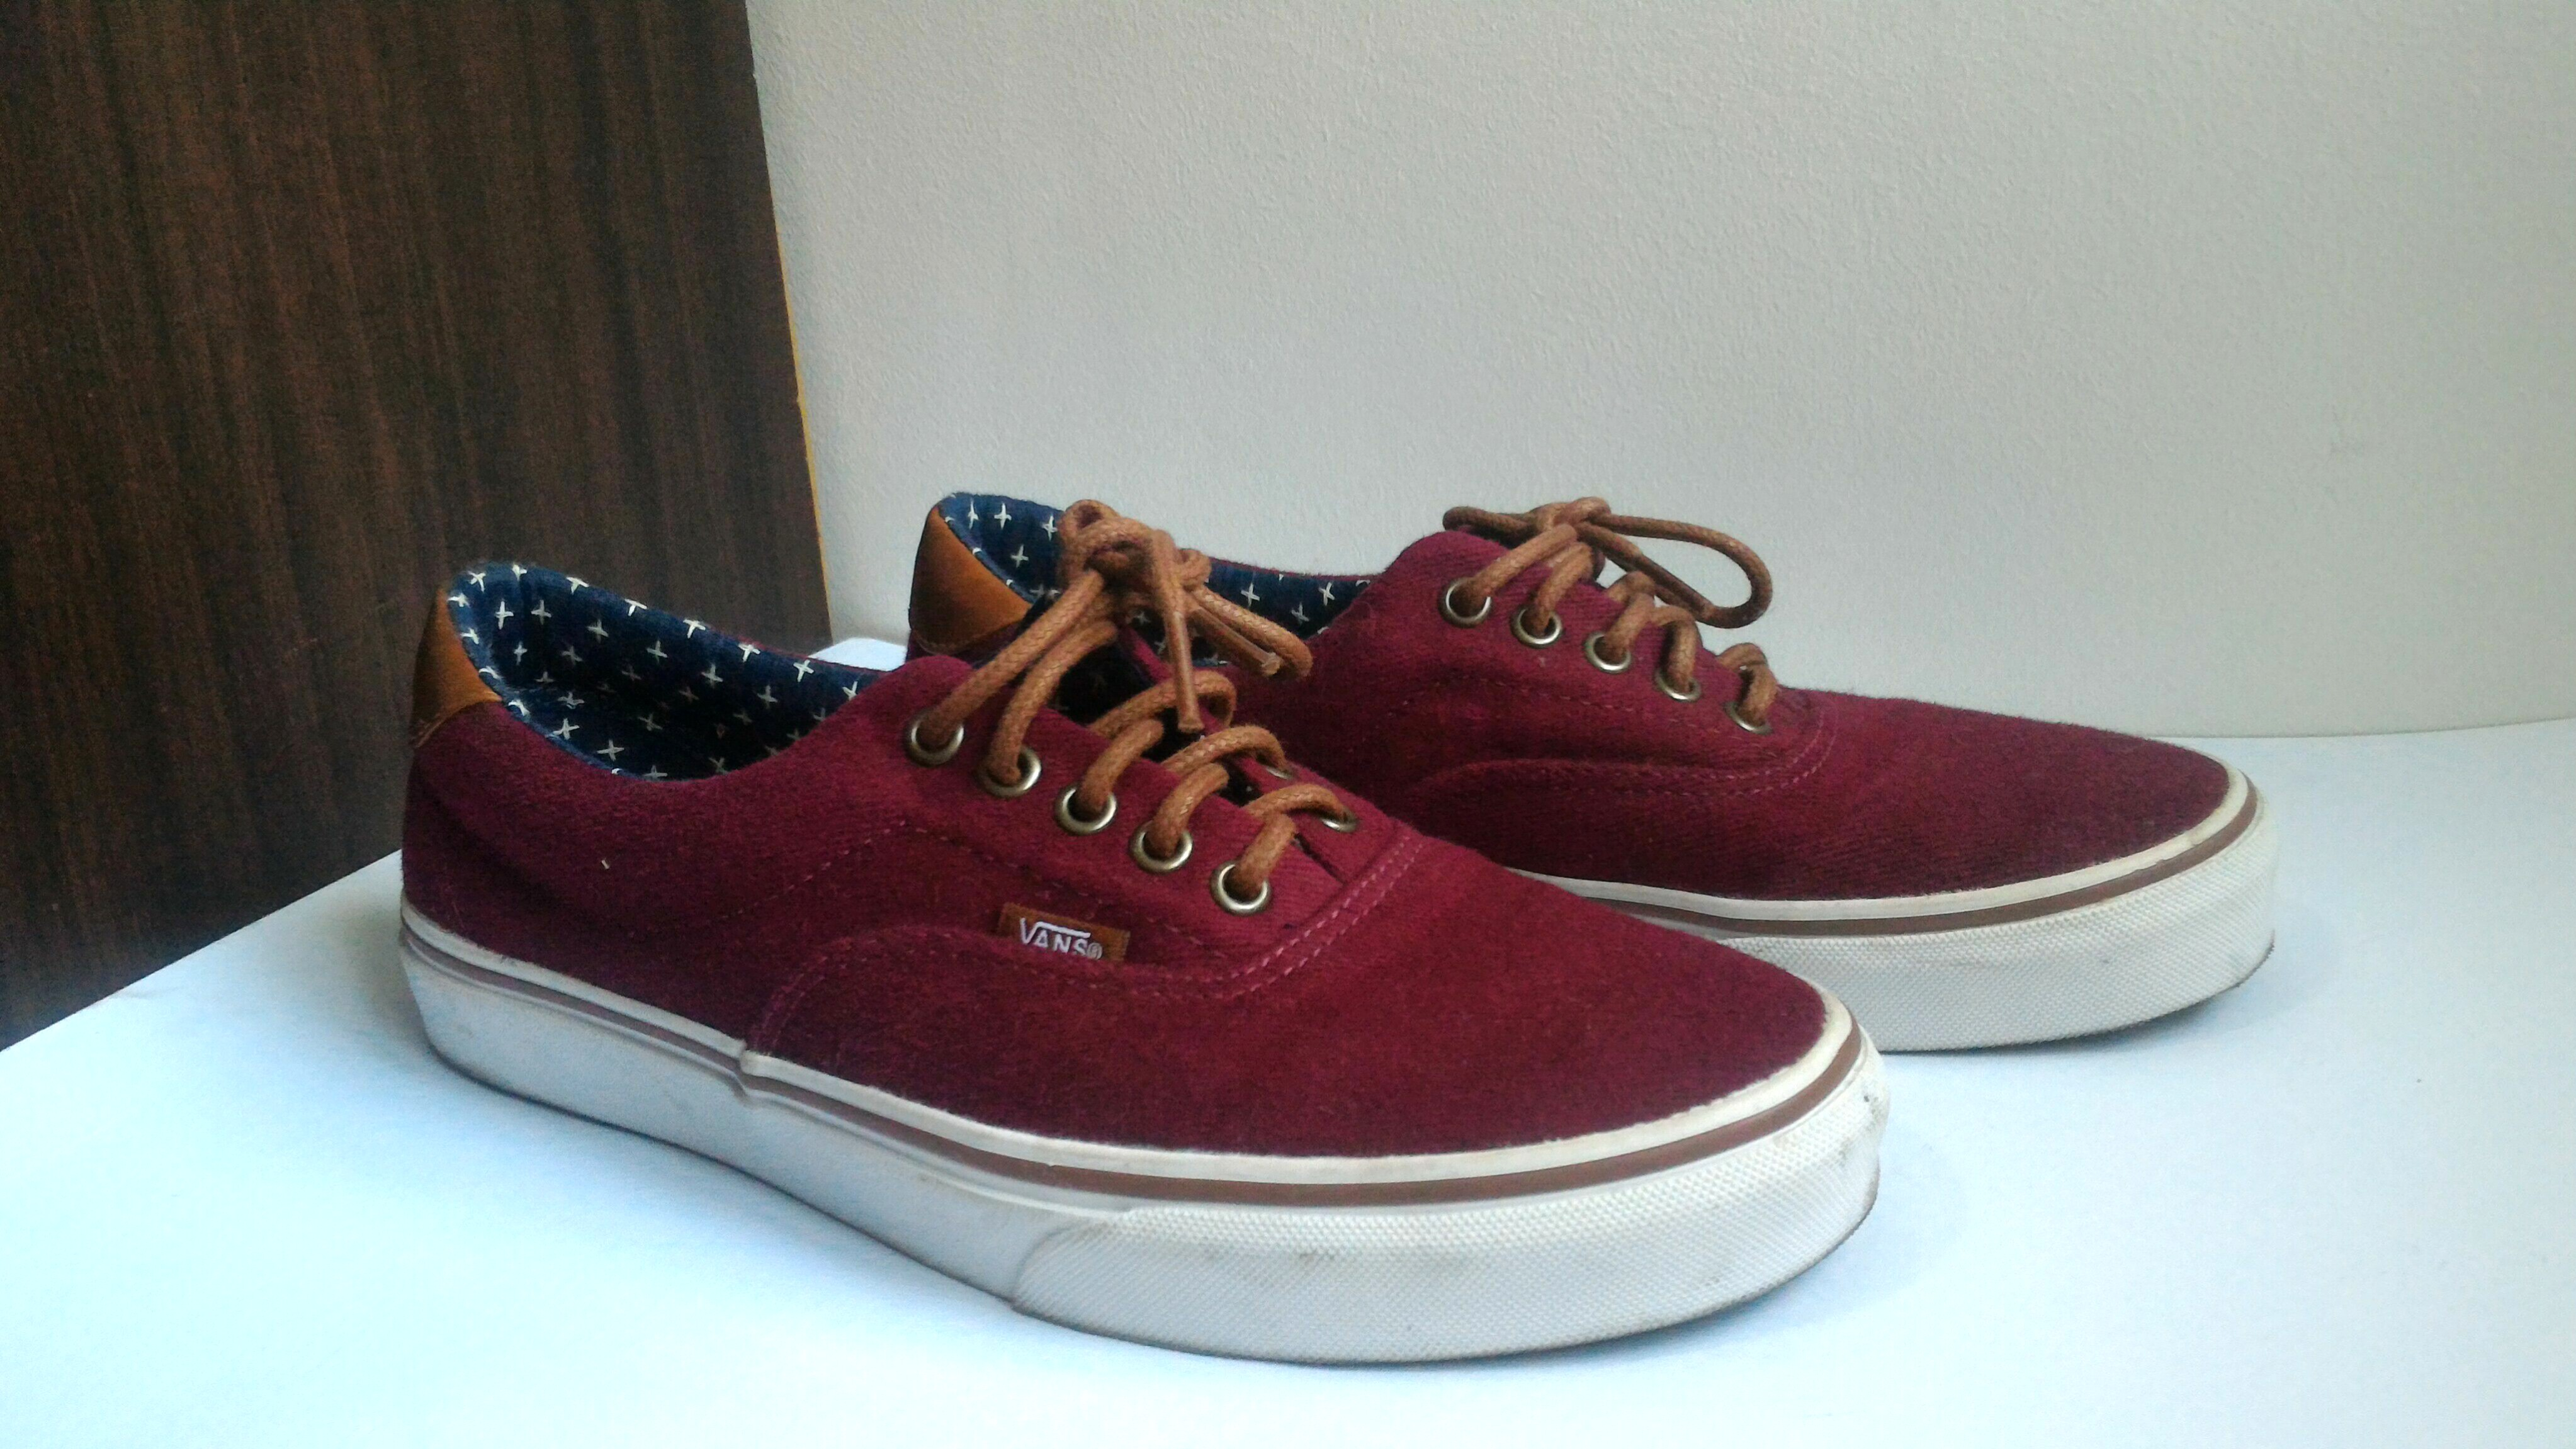 3c76a25456e1 Vans Shoes (Maroon with Leather Brown)